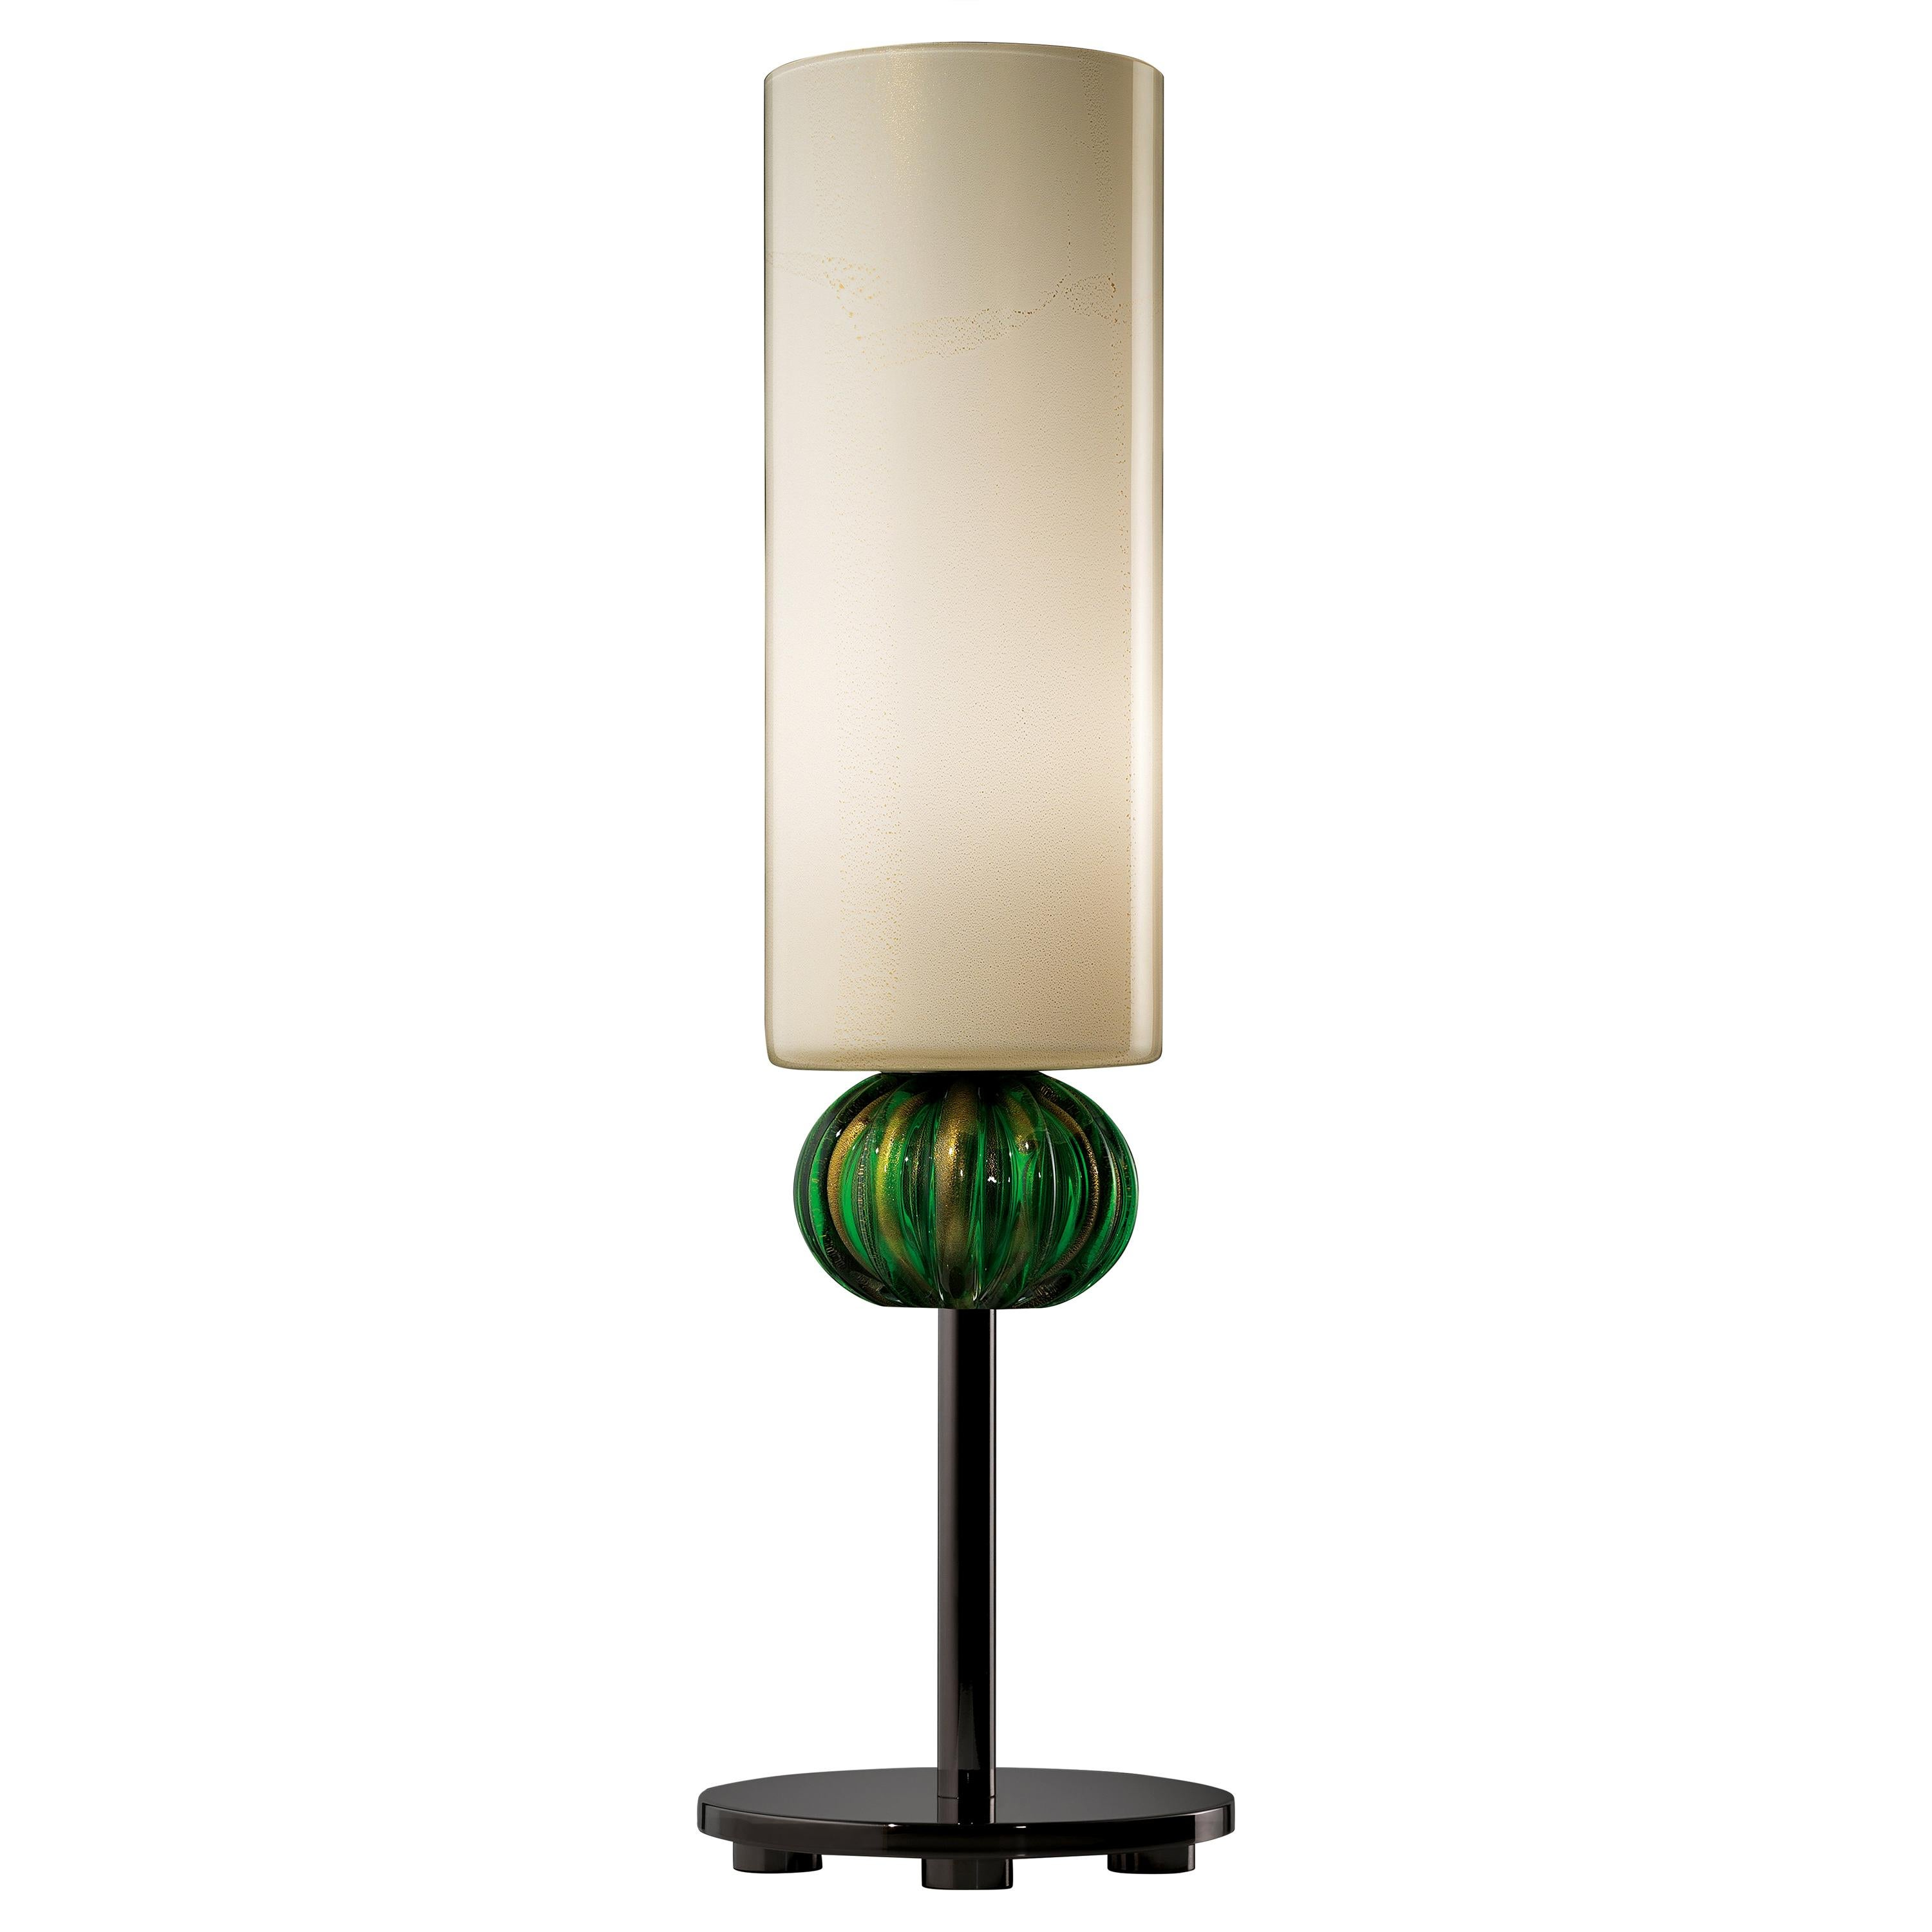 Gallia 5625 Table Lamp in Glass, by Barovier & Toso